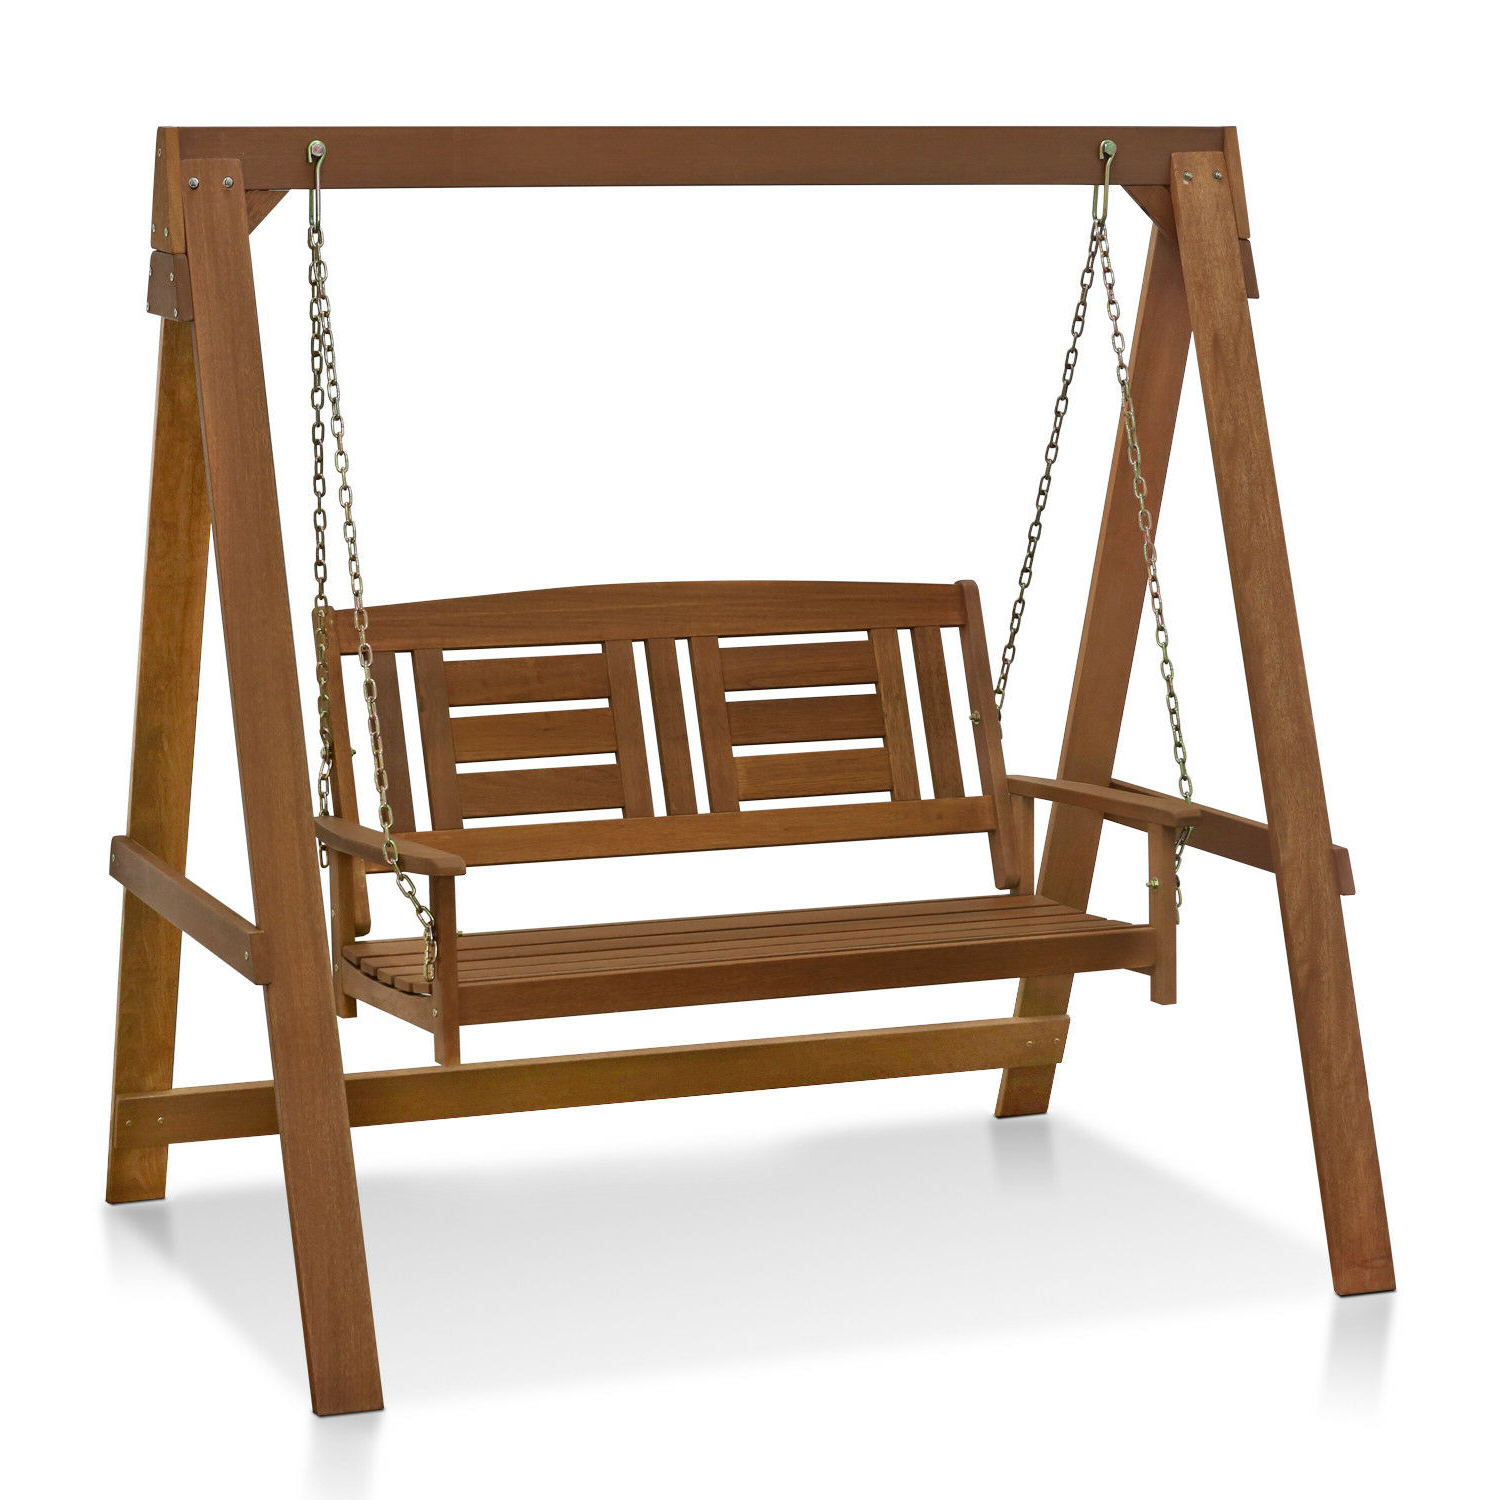 Current Furinno Tioman Hardwood Hanging Porch Swing With Stand, Brown For 2 Person Light Teak Oil Wood Outdoor Swings (View 3 of 25)